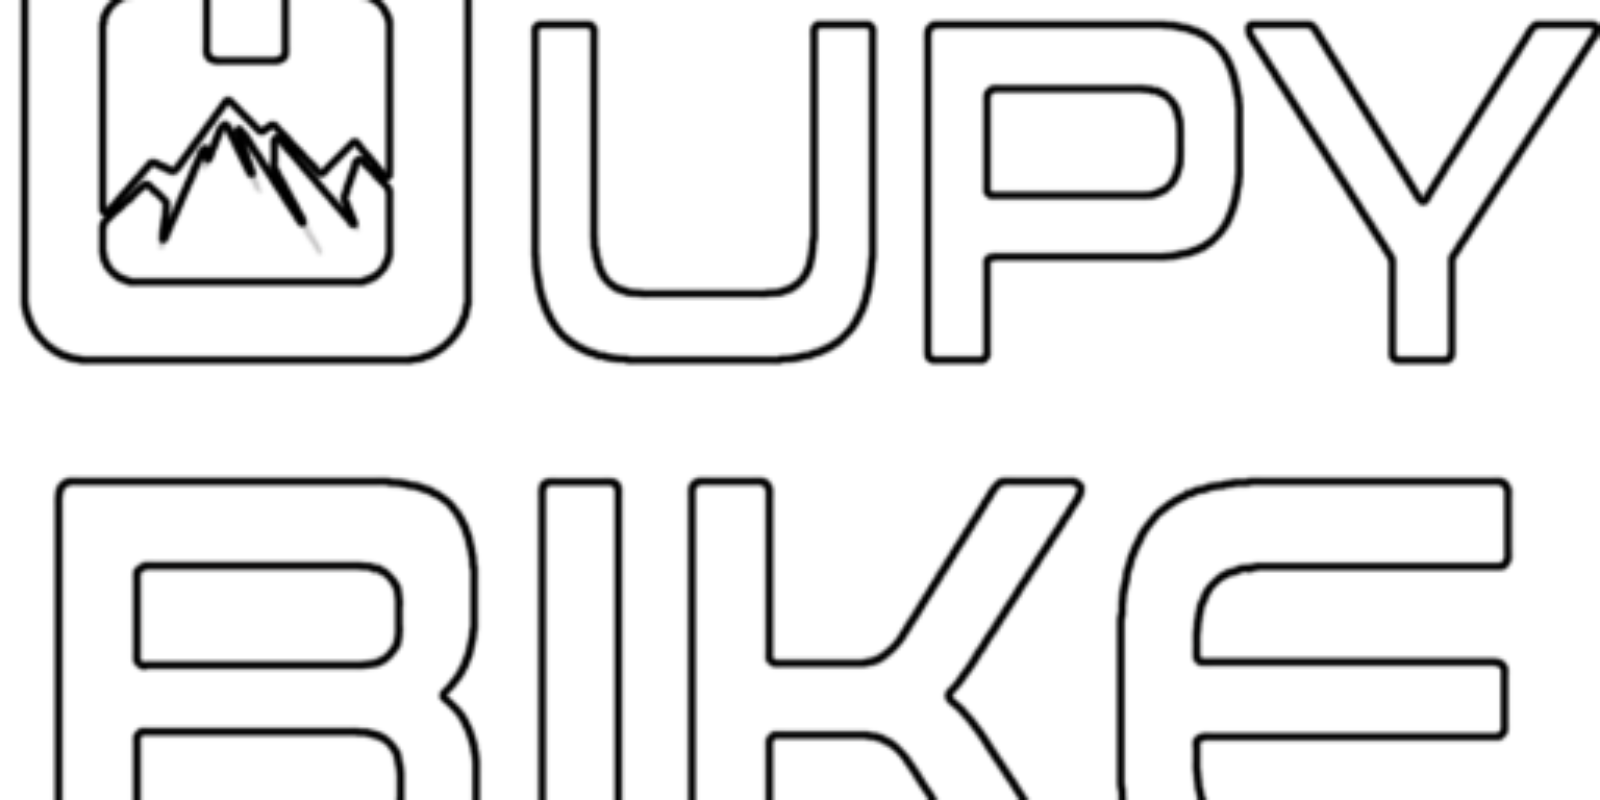 cropped-Oupy-Bike-Version-TBR-Contours.png